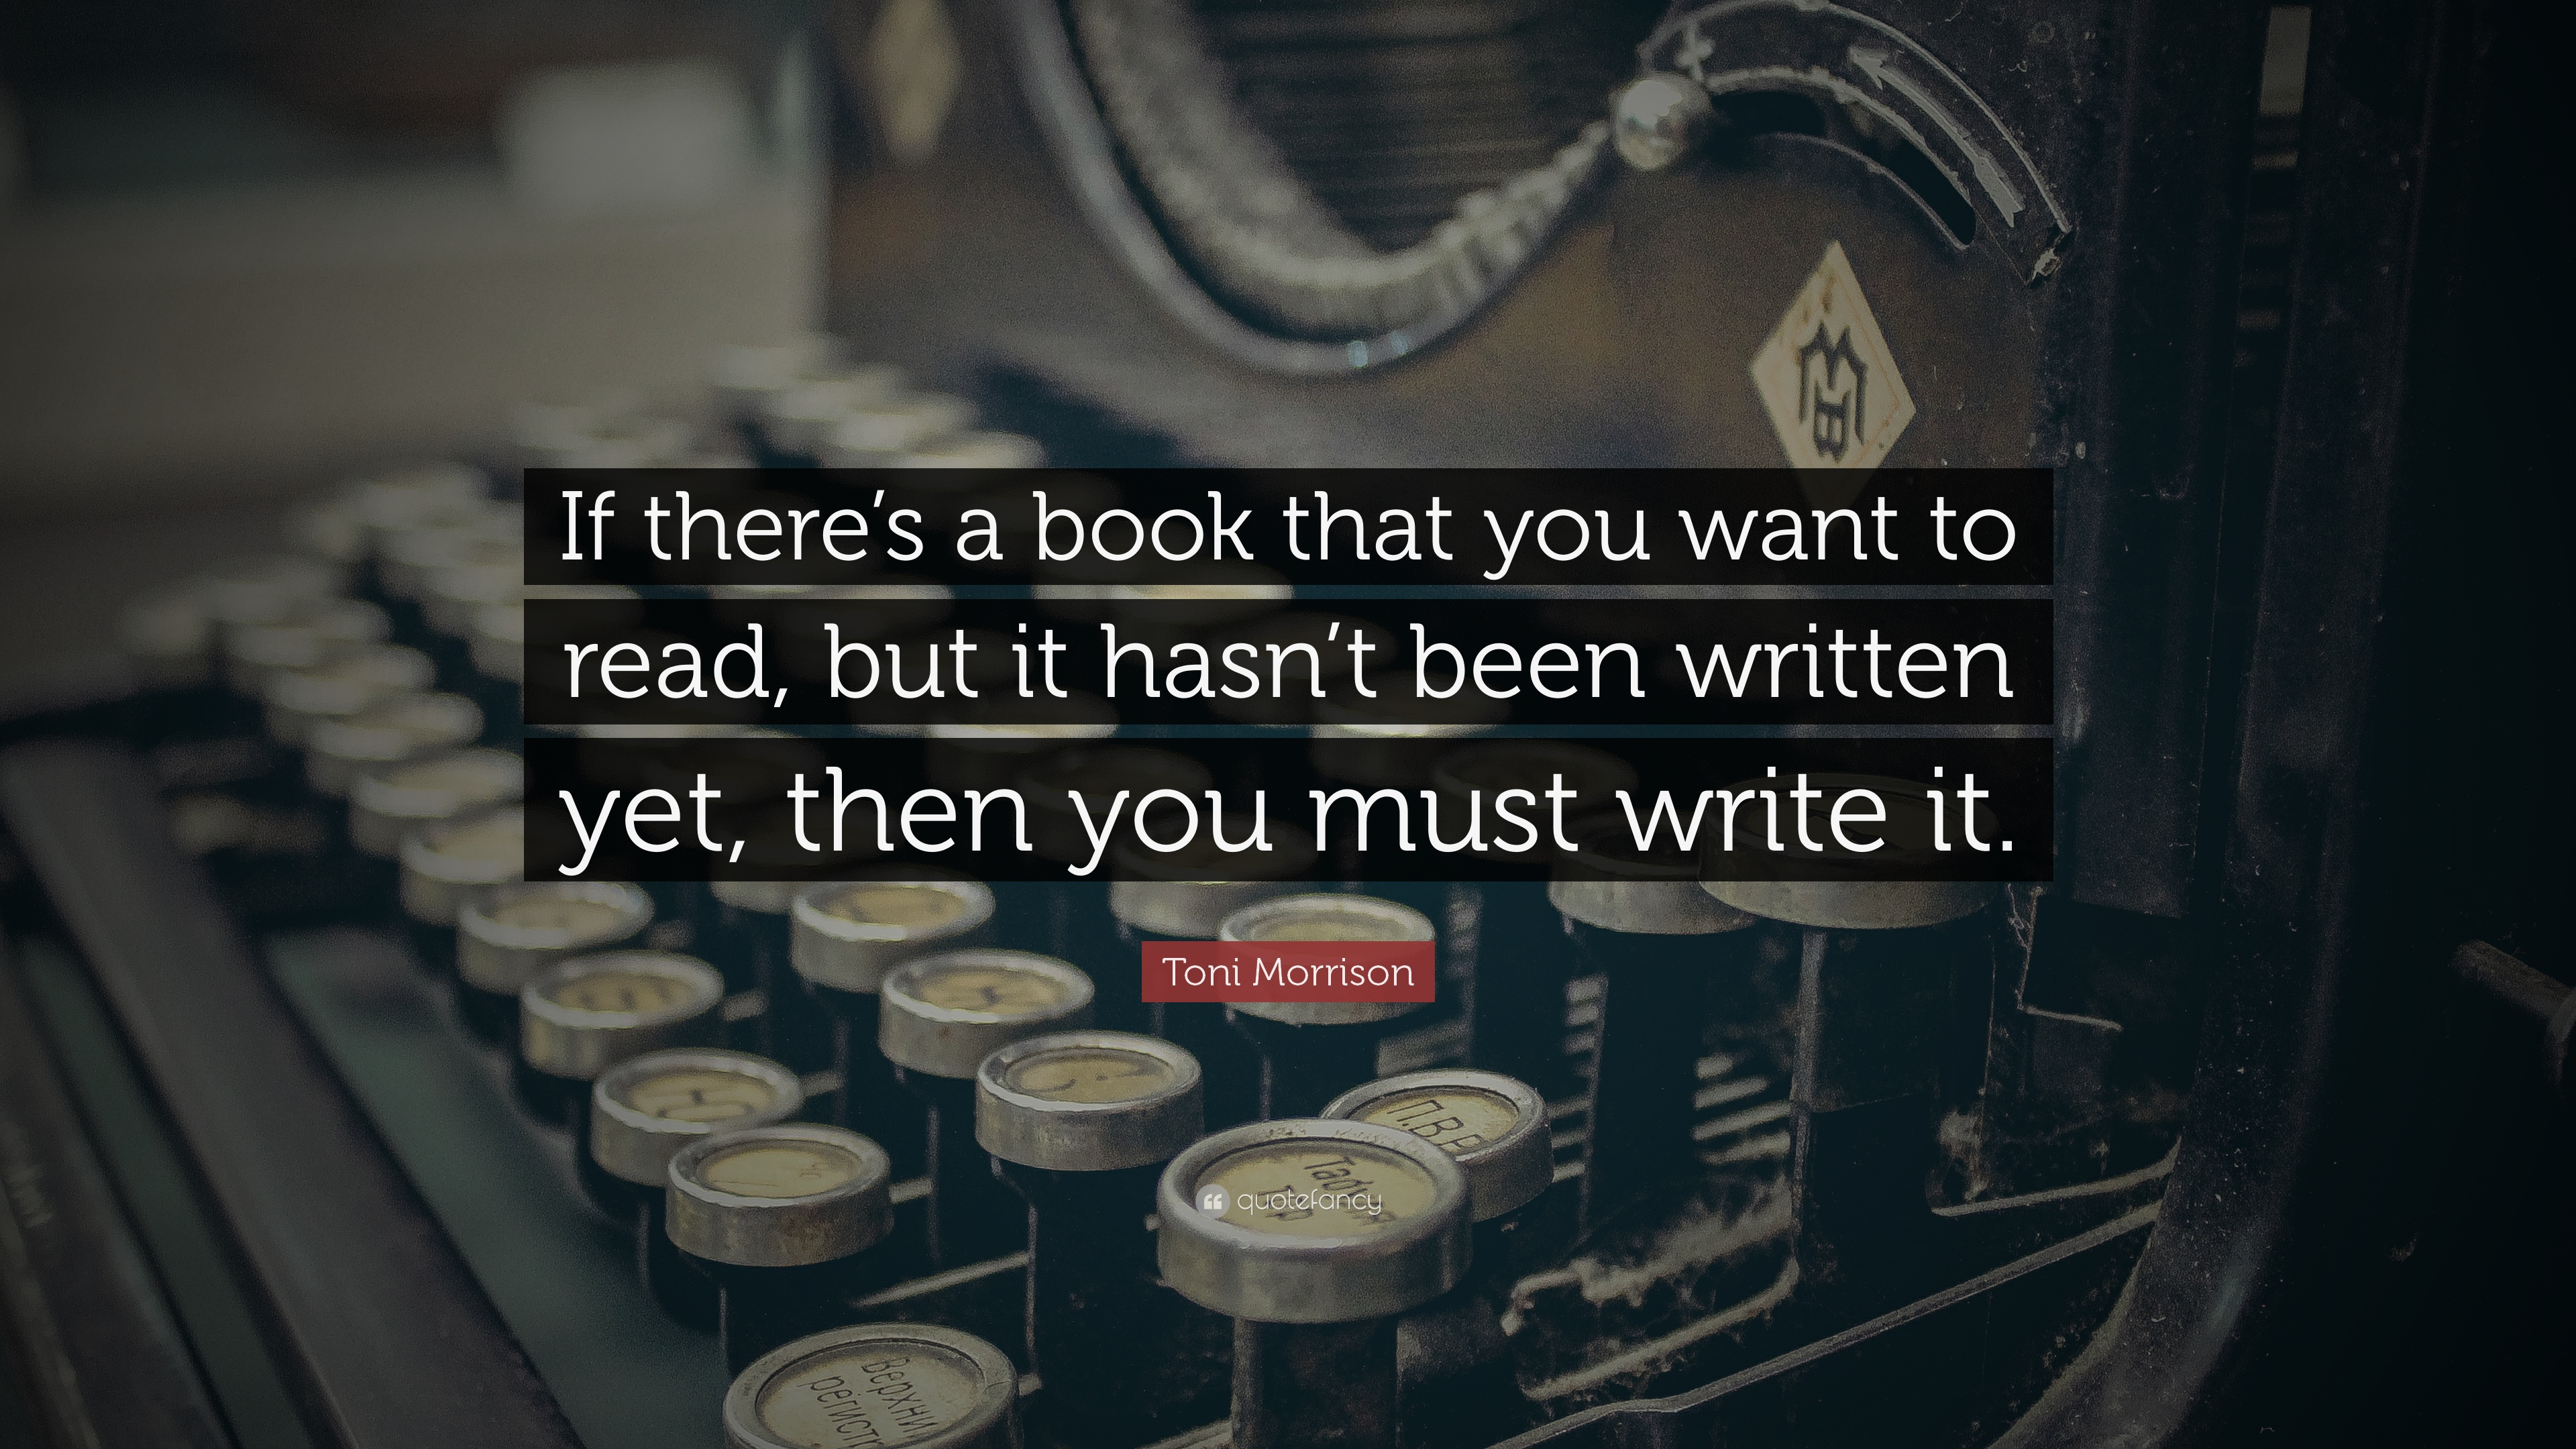 Quotes About Writing: U201cIf Thereu0027s A Book That You Want To Read, But